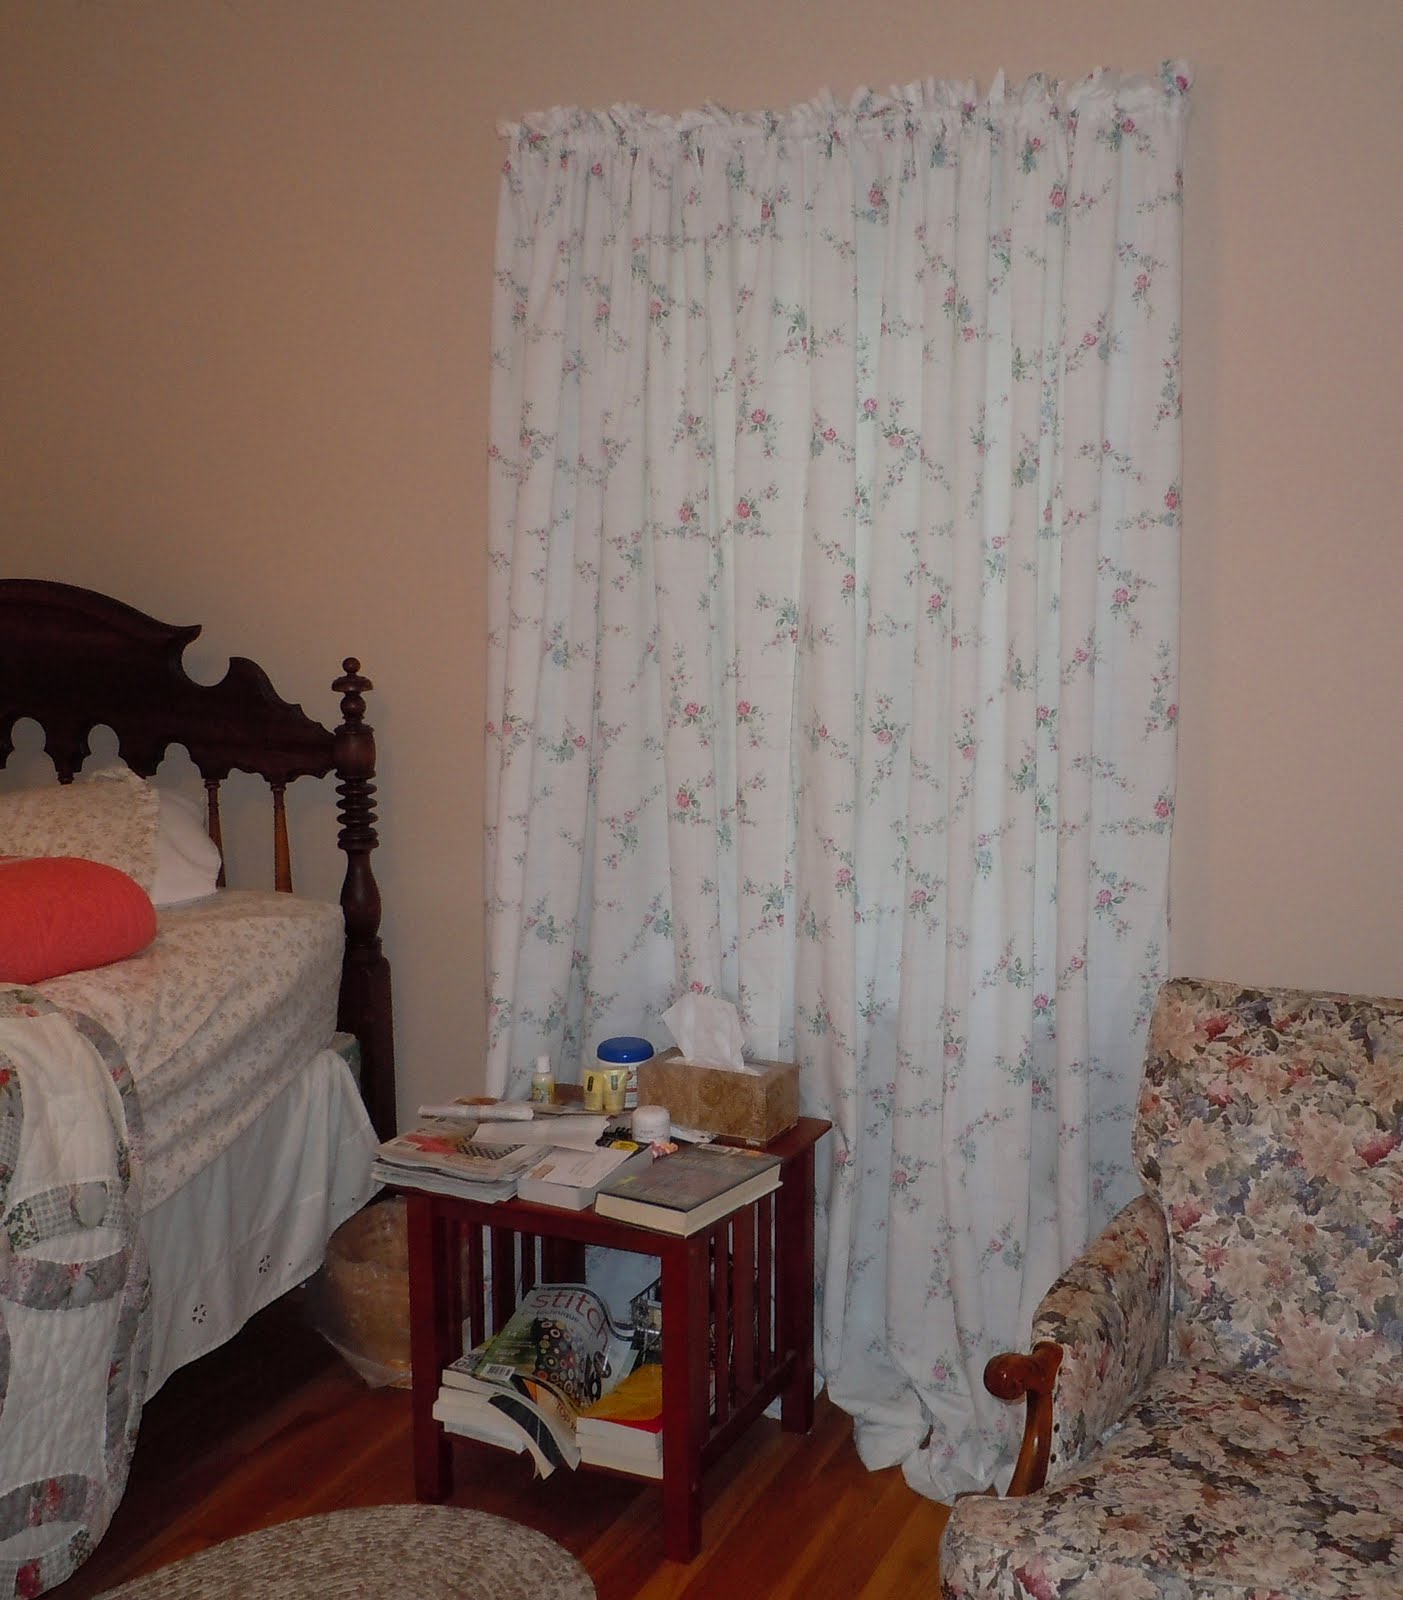 Macys Curtains For Living Room Fabric Shower Curtains Macys Curtain Ideas For Kitchen Living